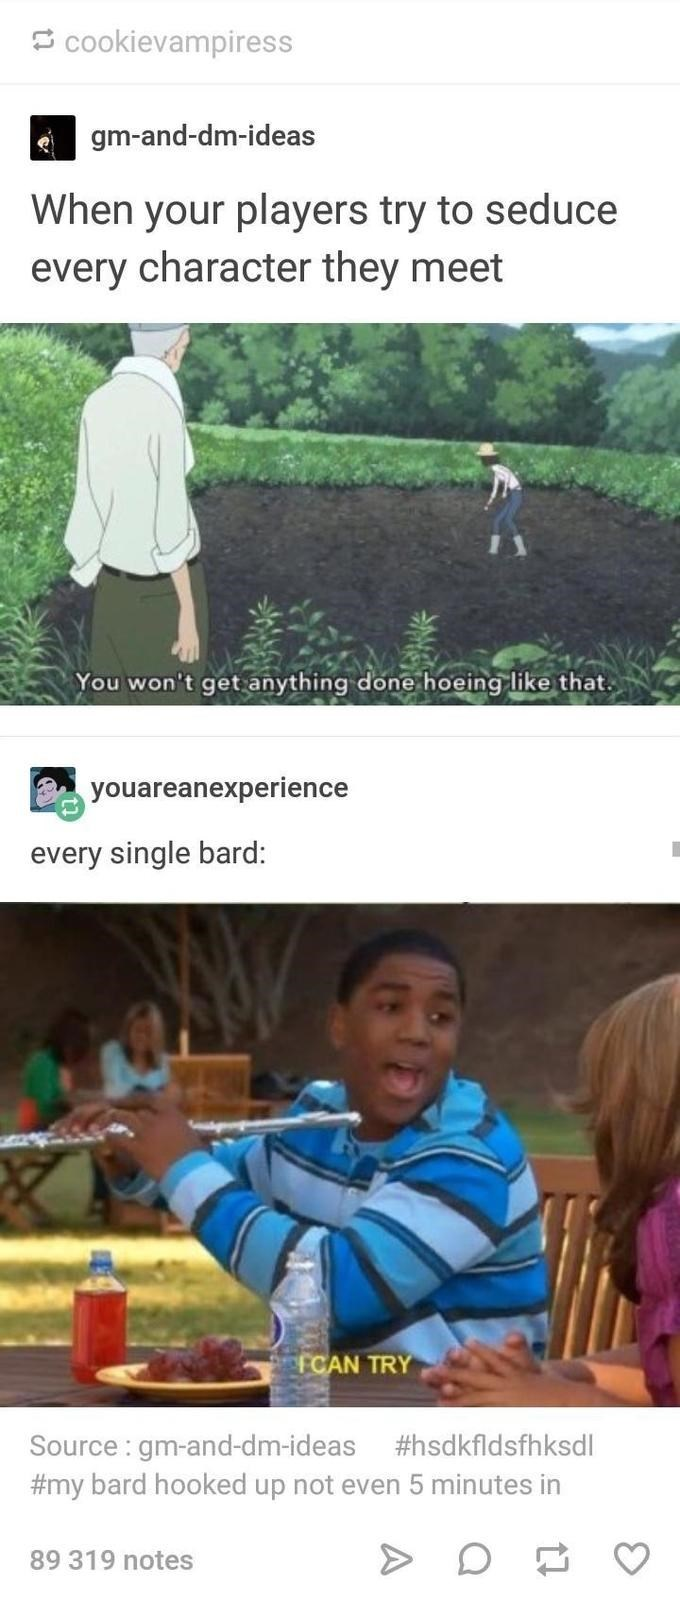 Adaptation - cookievampiress gm-and-dm-ideas When your players try to seduce every character they meet You won't get anything done hoeing like that. youareanexperience every single bard: FCAN TRY Source: gm-and-dm-ideas #hsdkfldsfhksdl #my bard hooked up not even 5 minutes in 89 319 notes